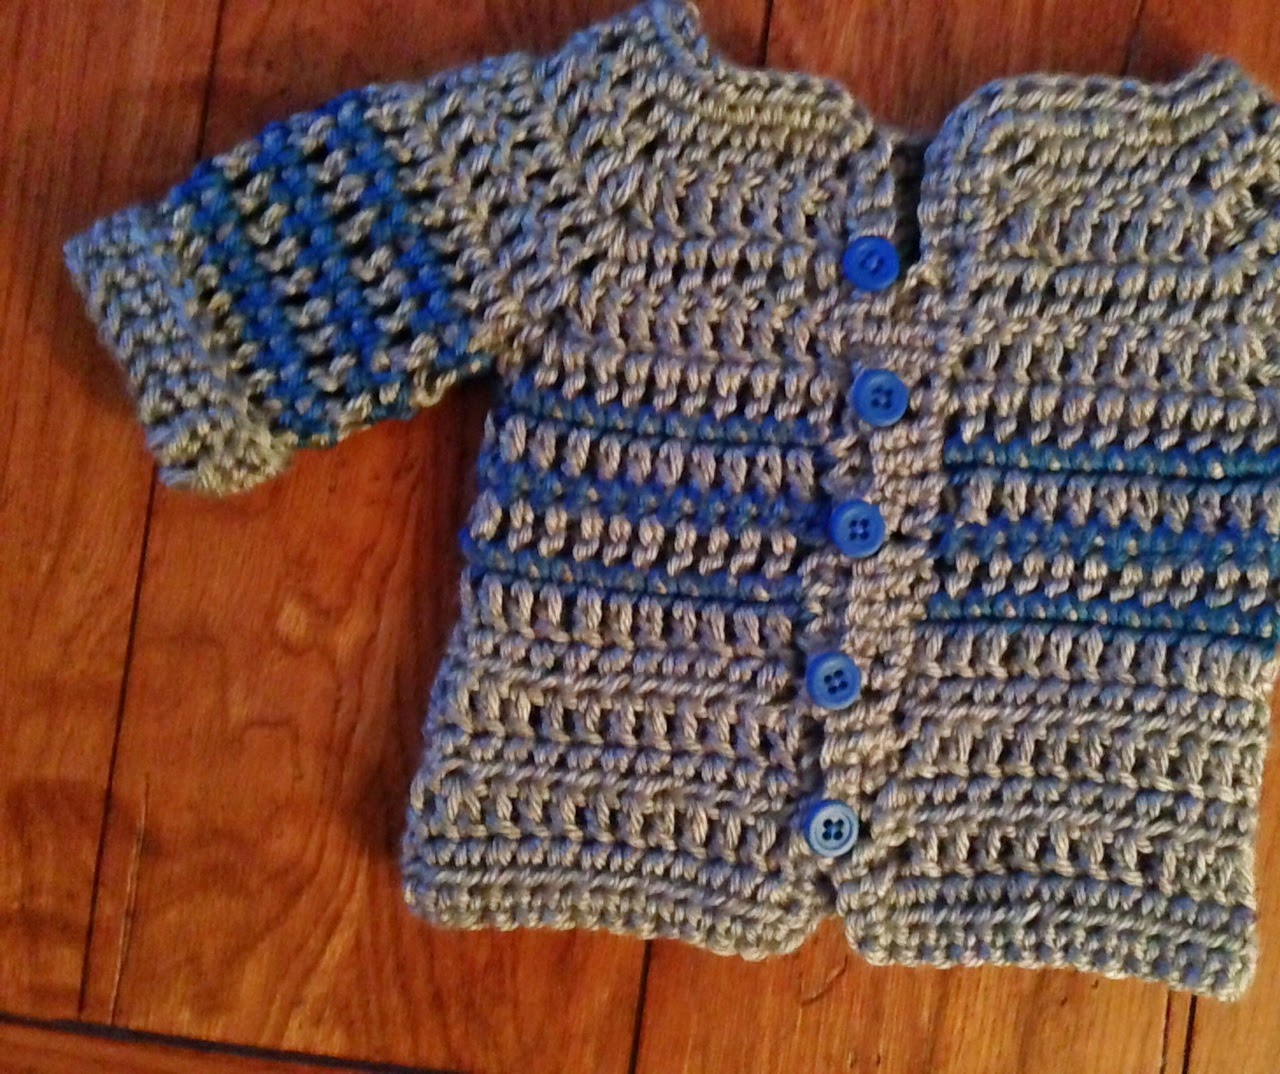 Free Crochet Pattern For Easy Baby Sweater : Craft Brag: Crochet Baby Boy Sweater Pattern - Free